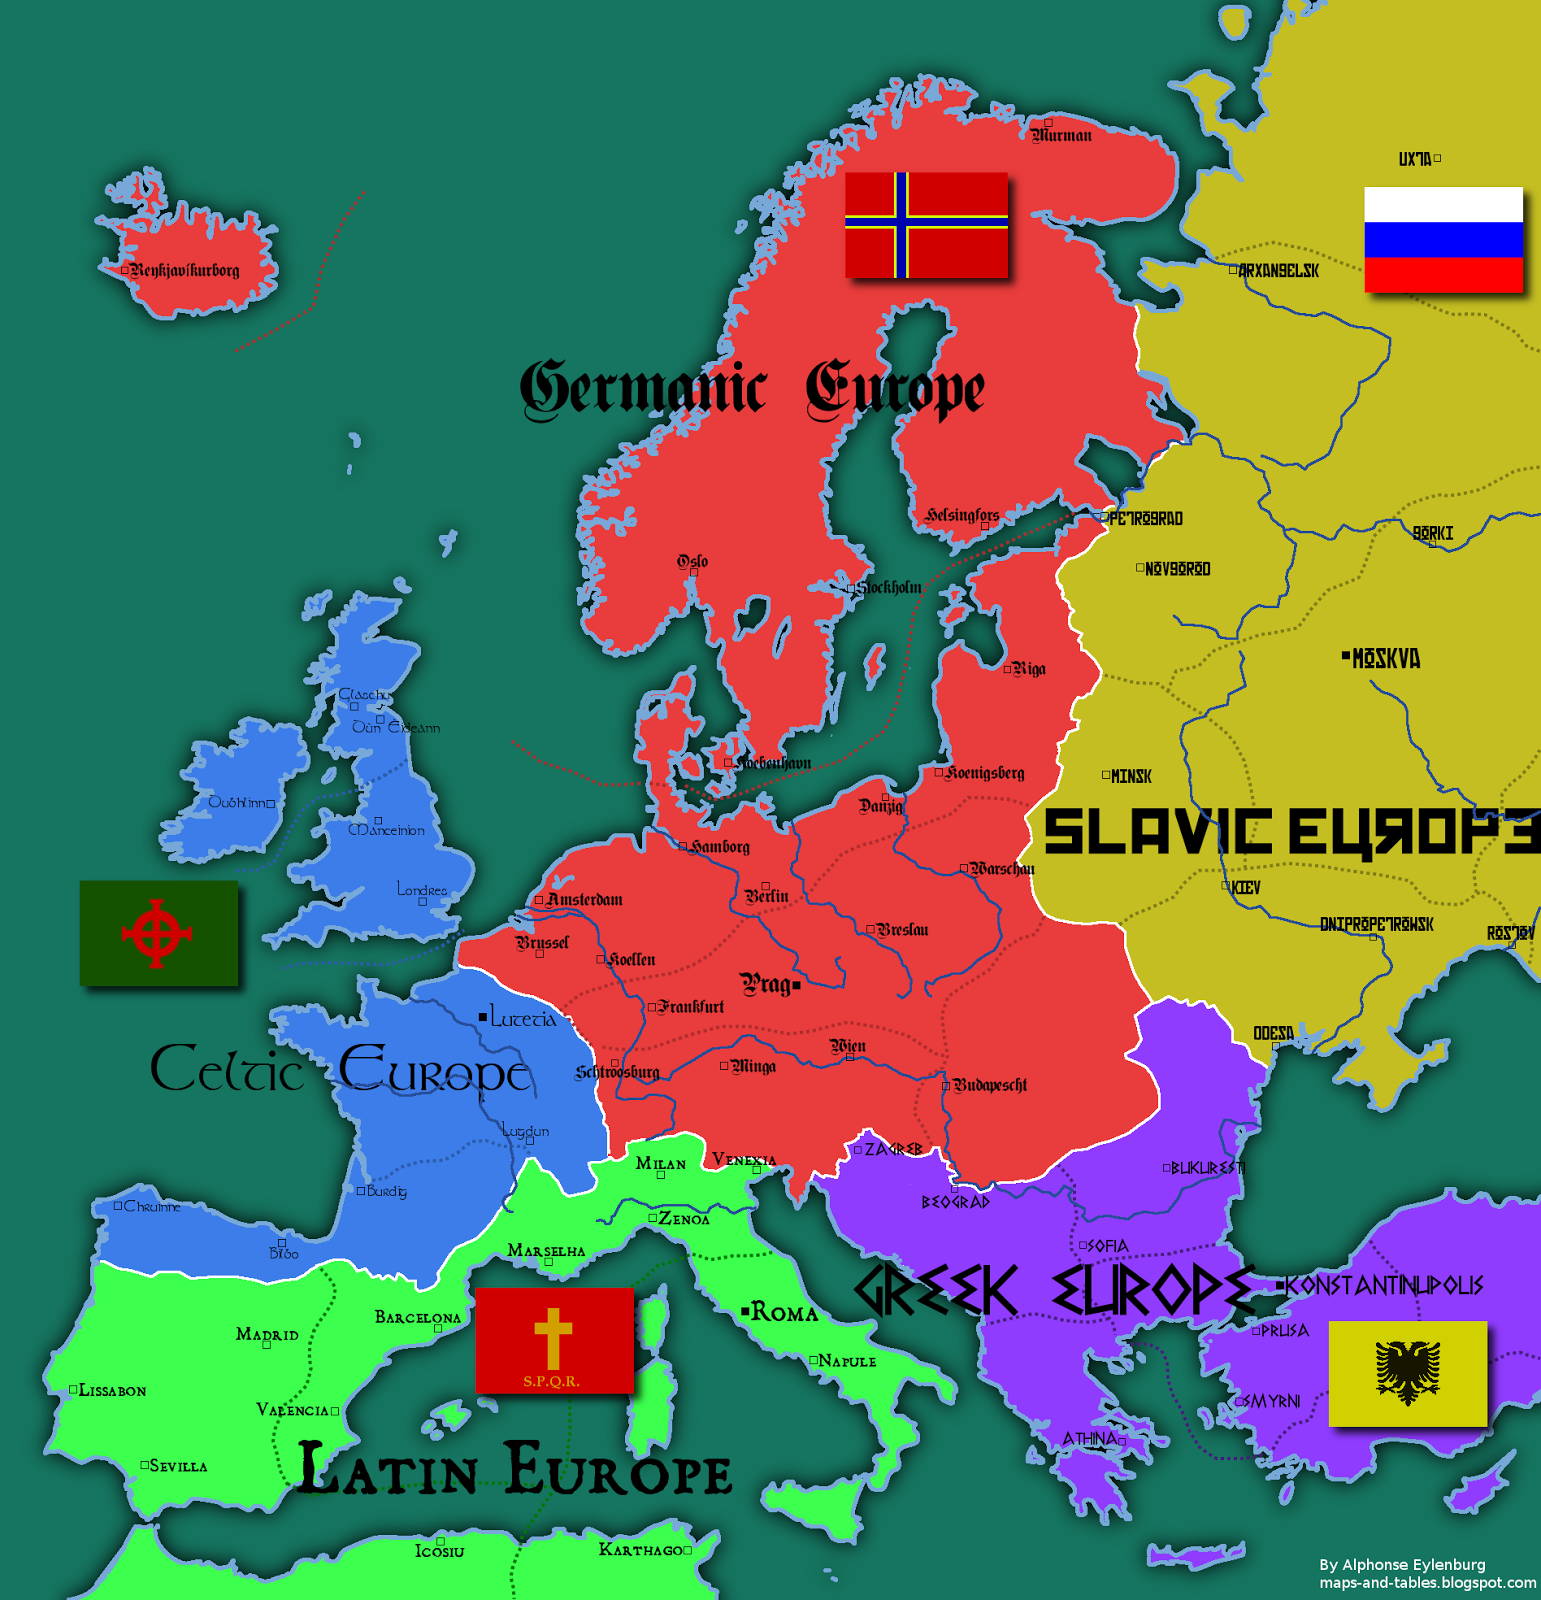 Maps and Tables: 4 Maps of an Alternative Europe